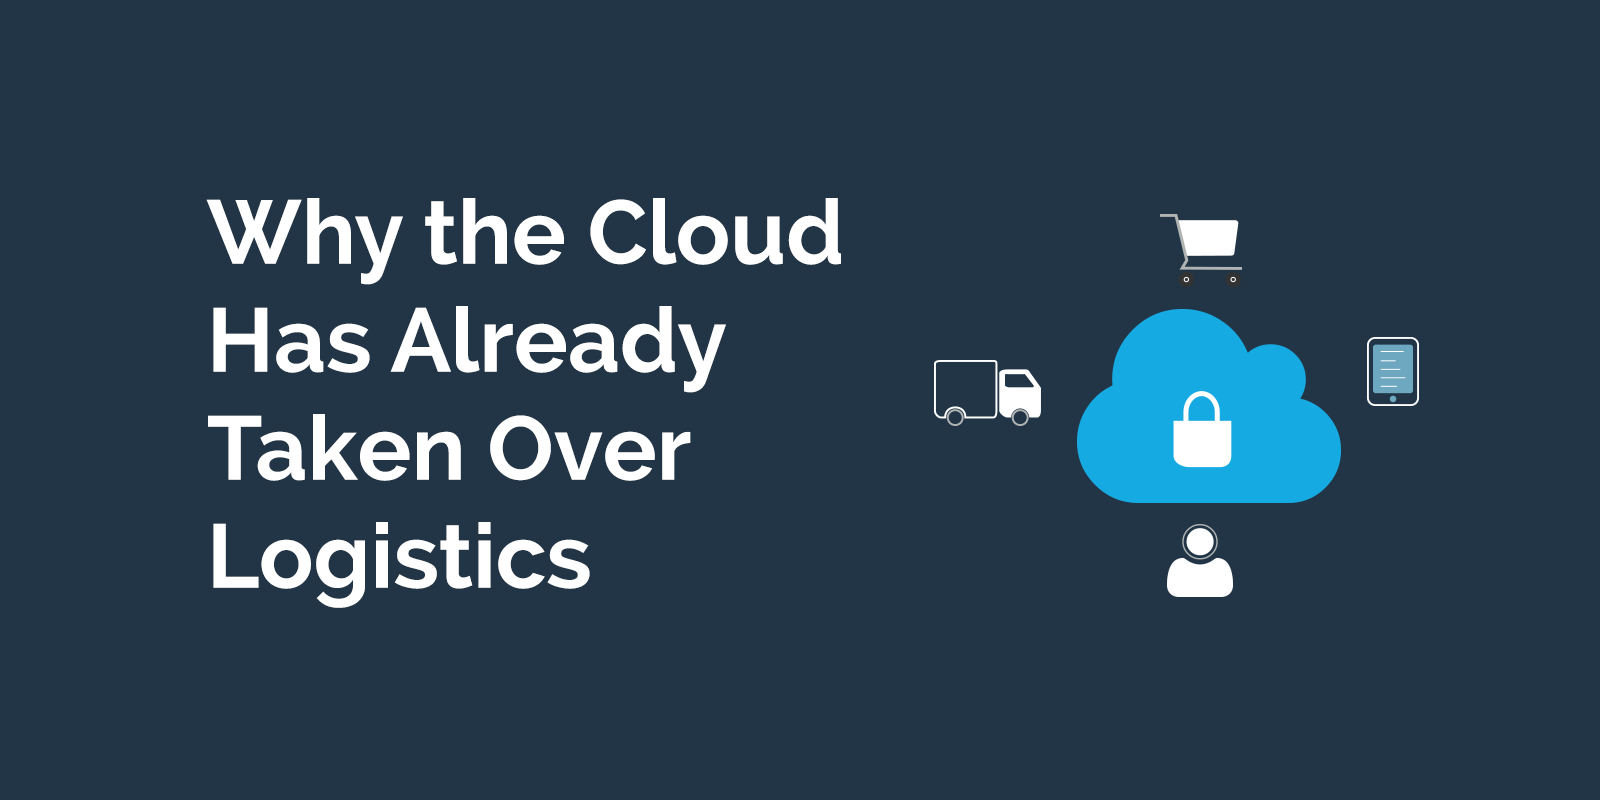 Why-the-cloud-has-taken-over-logistics